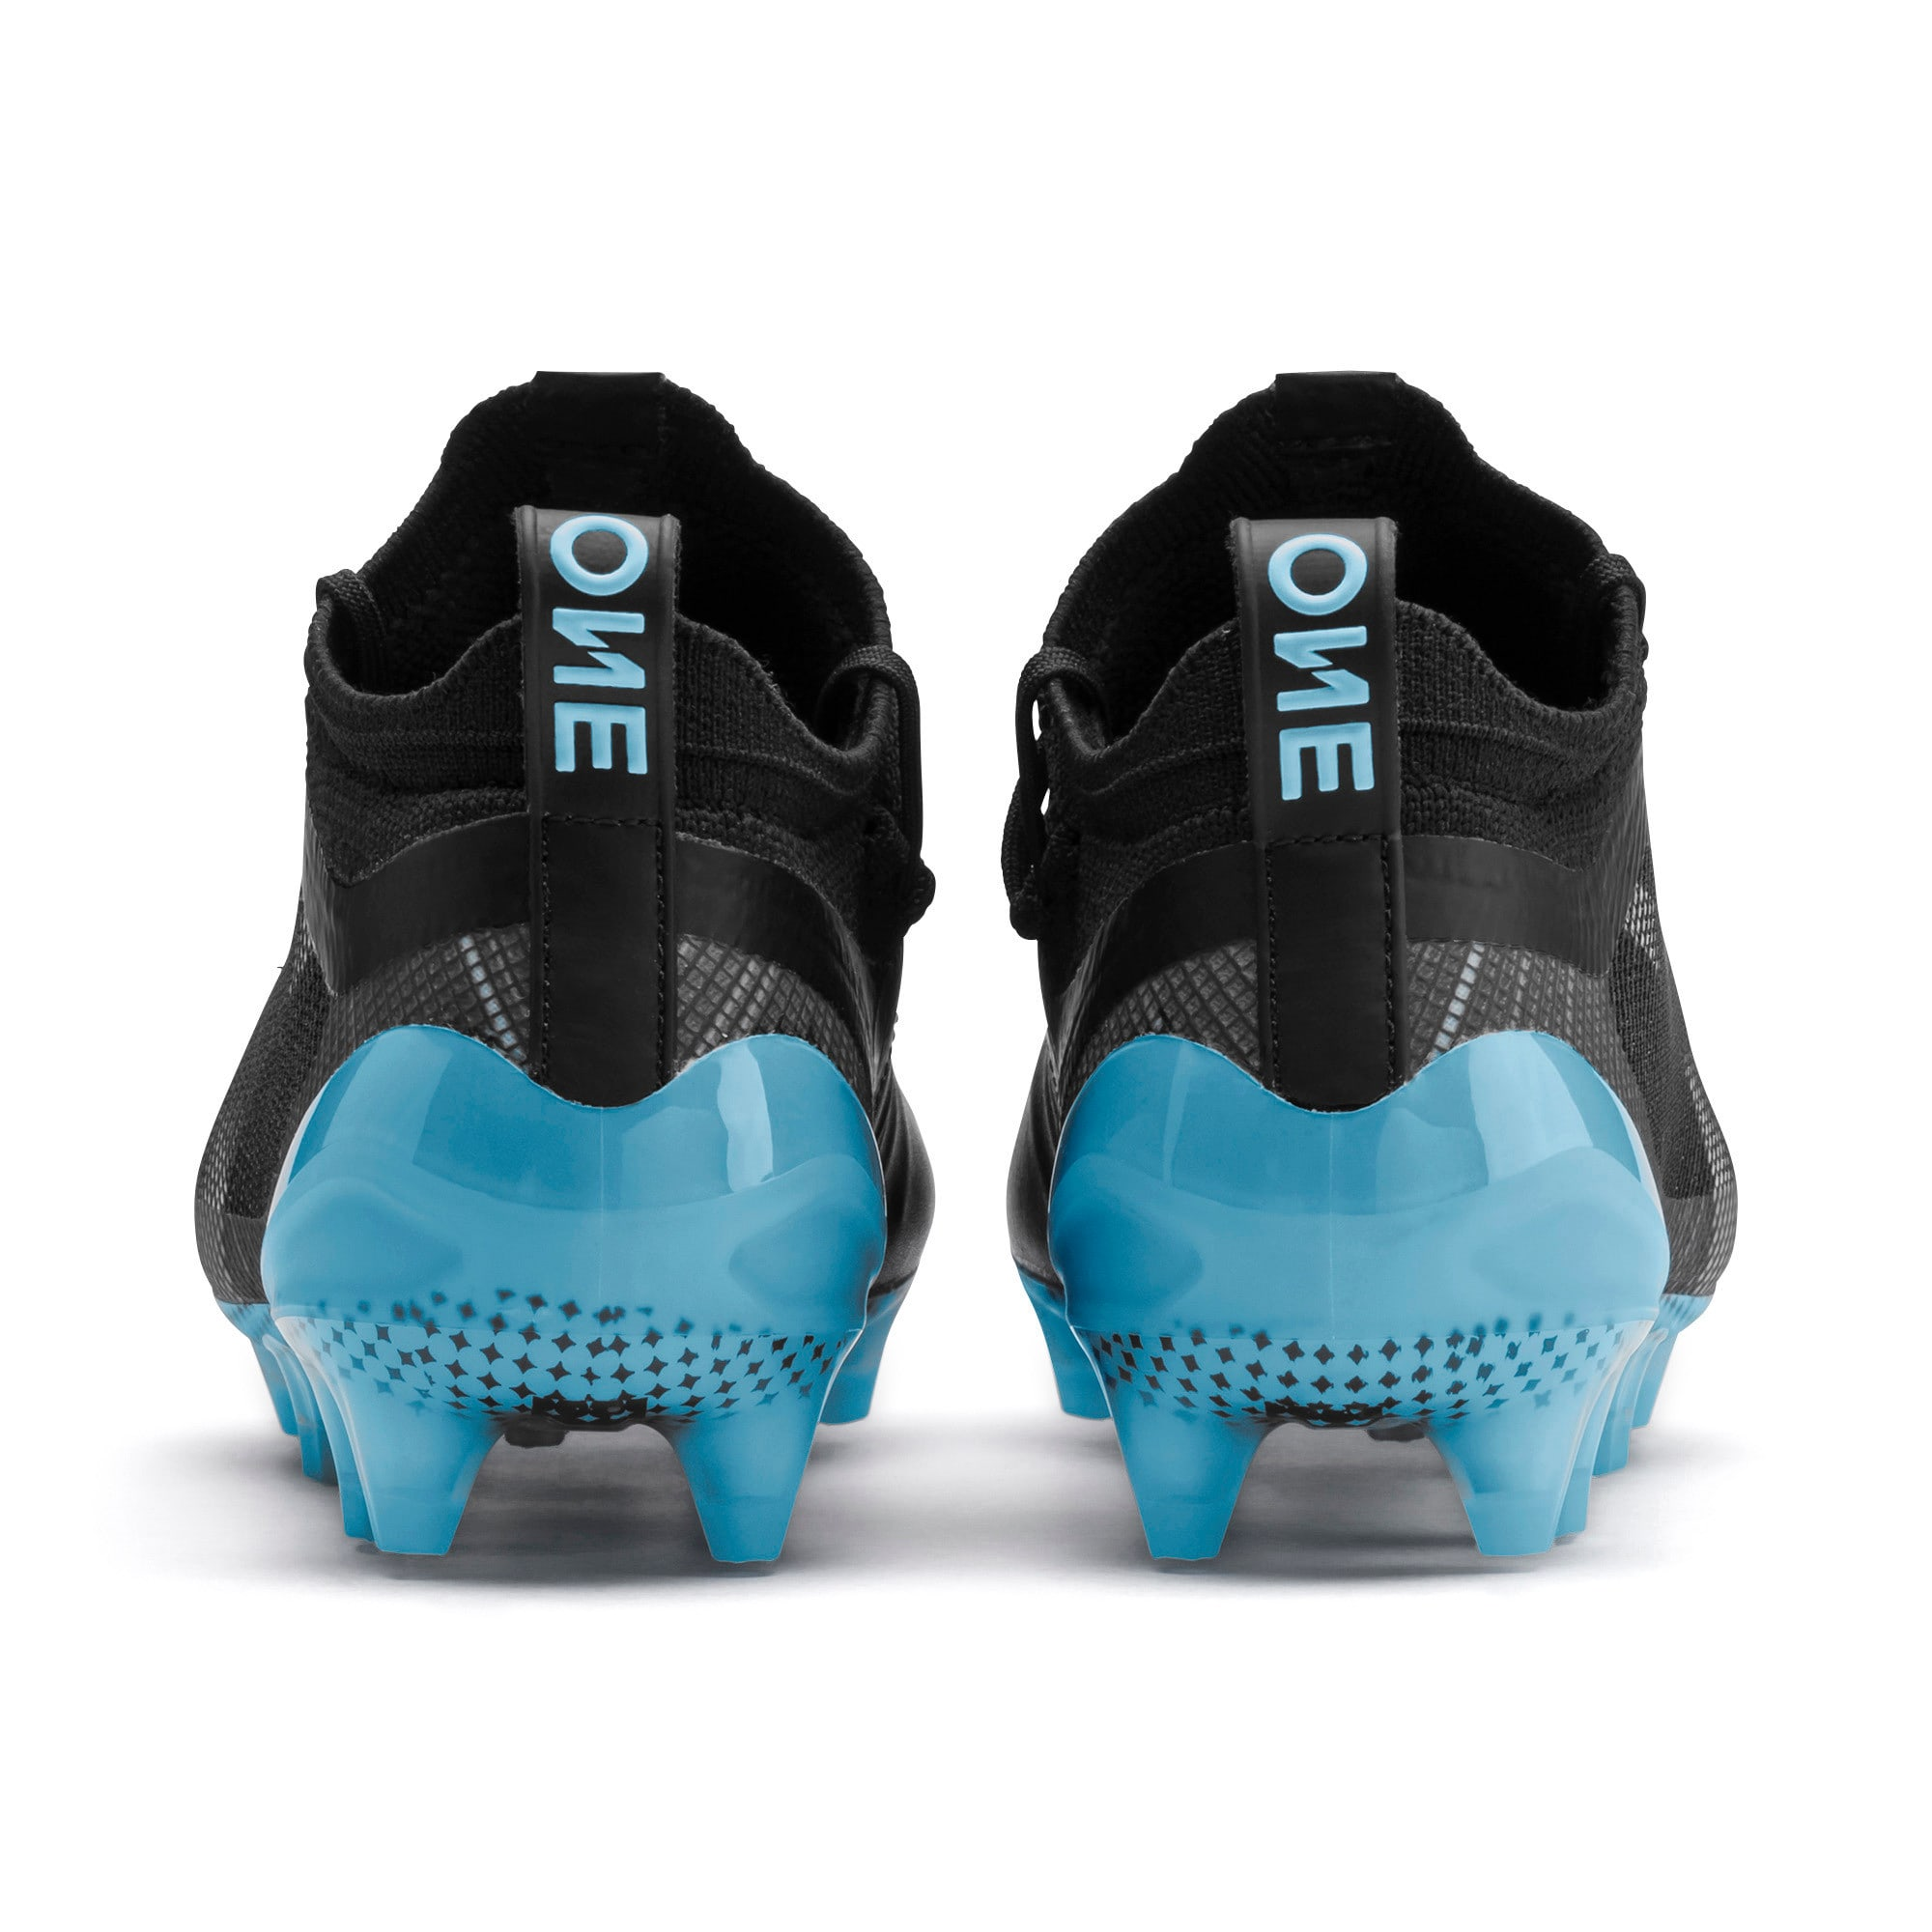 Imagen en miniatura 3 de Botas de fútbol PUMA ONE 5.1 City Youth, Black-Sky Blue-Puma White, mediana